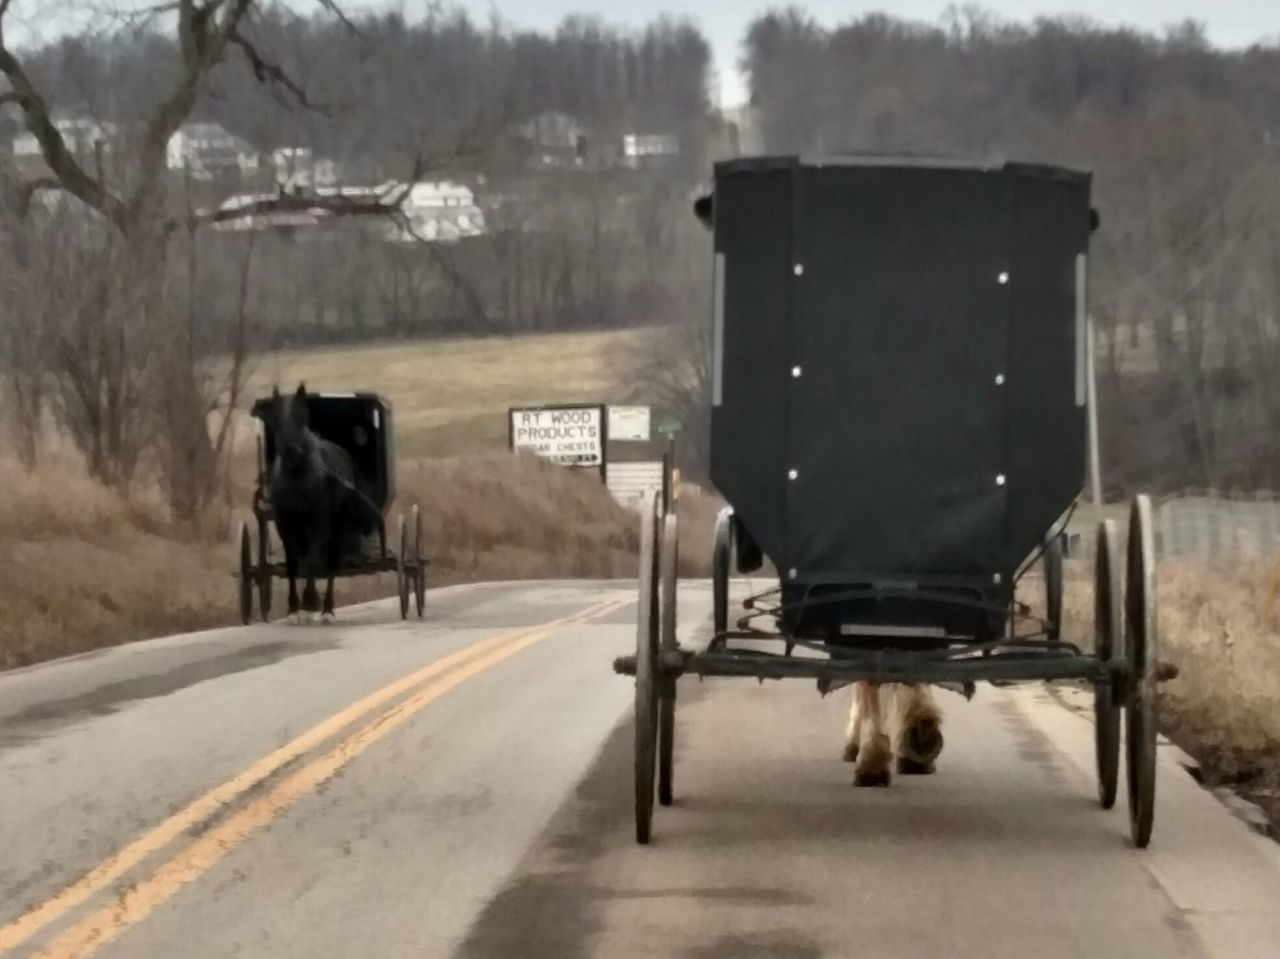 Girls Day Out! Amish Country Horse Drawn Carriage Things I Saw Today From My Point Of View The Purist (no Edit, No Filter) Sugarcreek Ohio, USA Working Animal Working Horse Amish Buggy Vintage Technology Old School The Tourist Ladyphotographerofthemonth Showcase: February